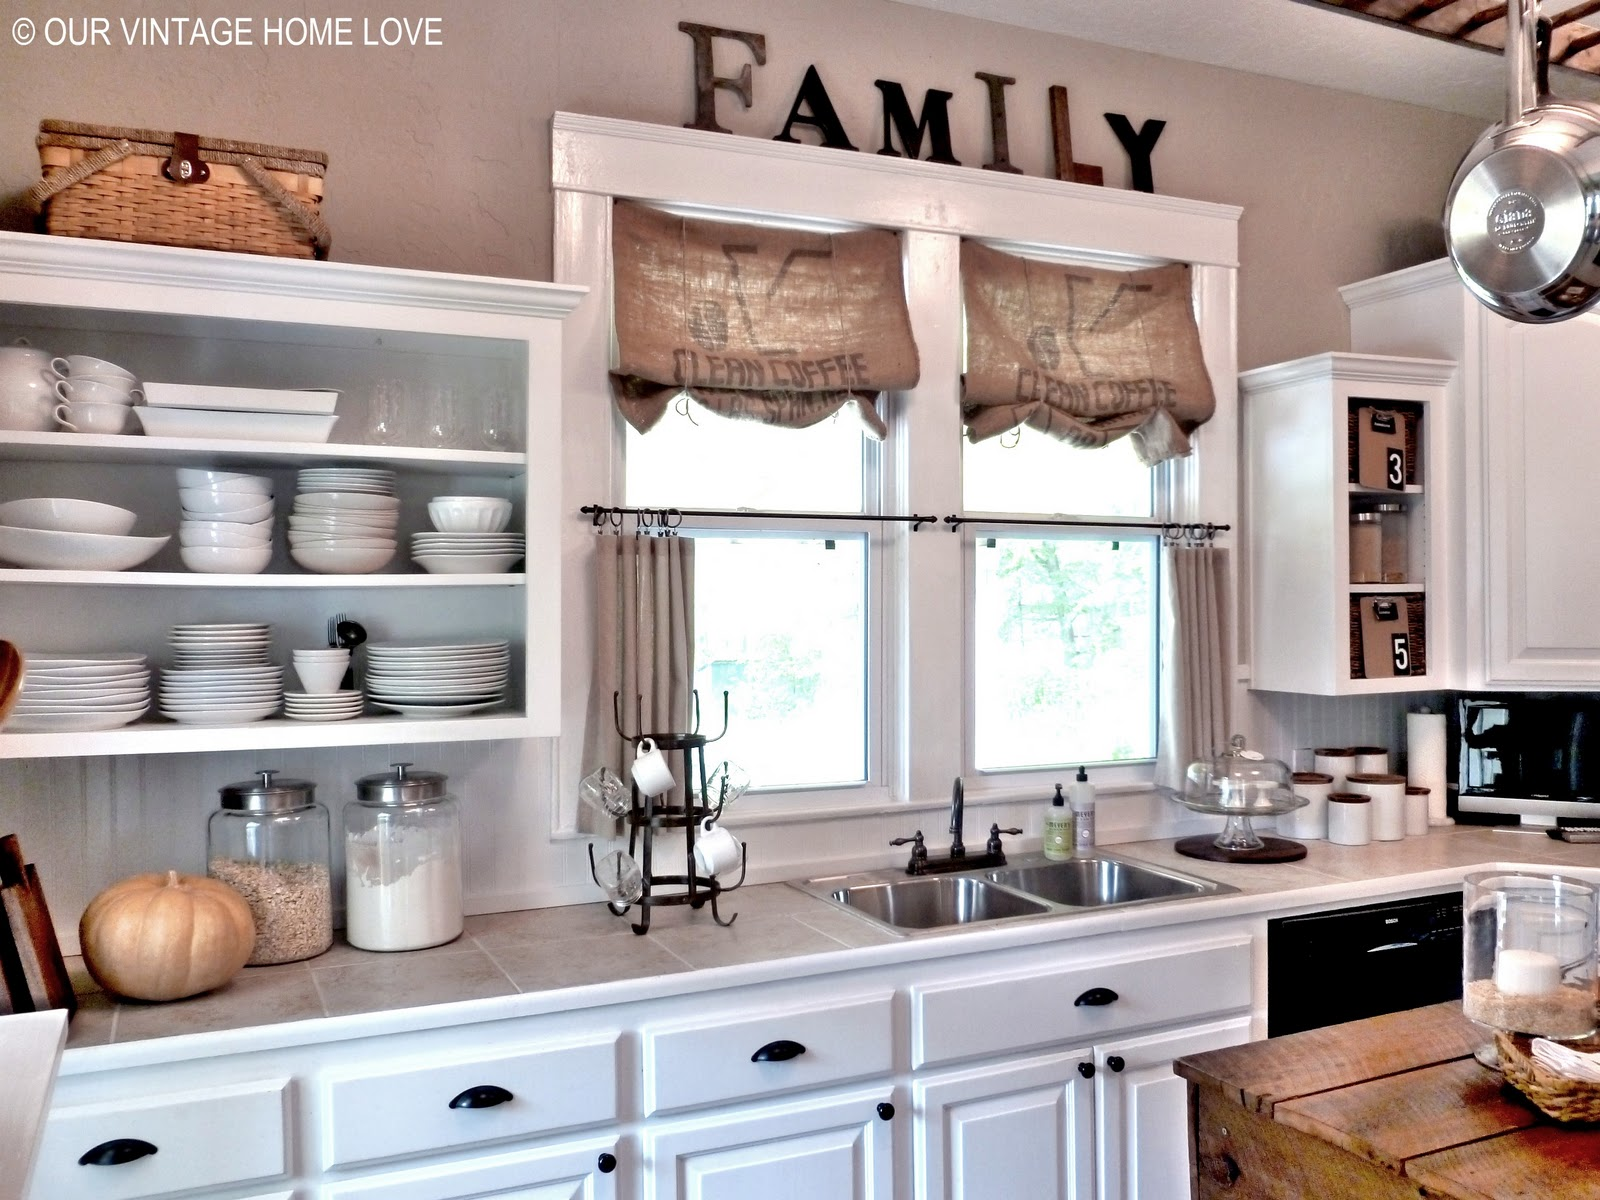 Kitchen Window Shades Grey Modern Cabinets Vintage Home Love Inexpensive Treatments And A